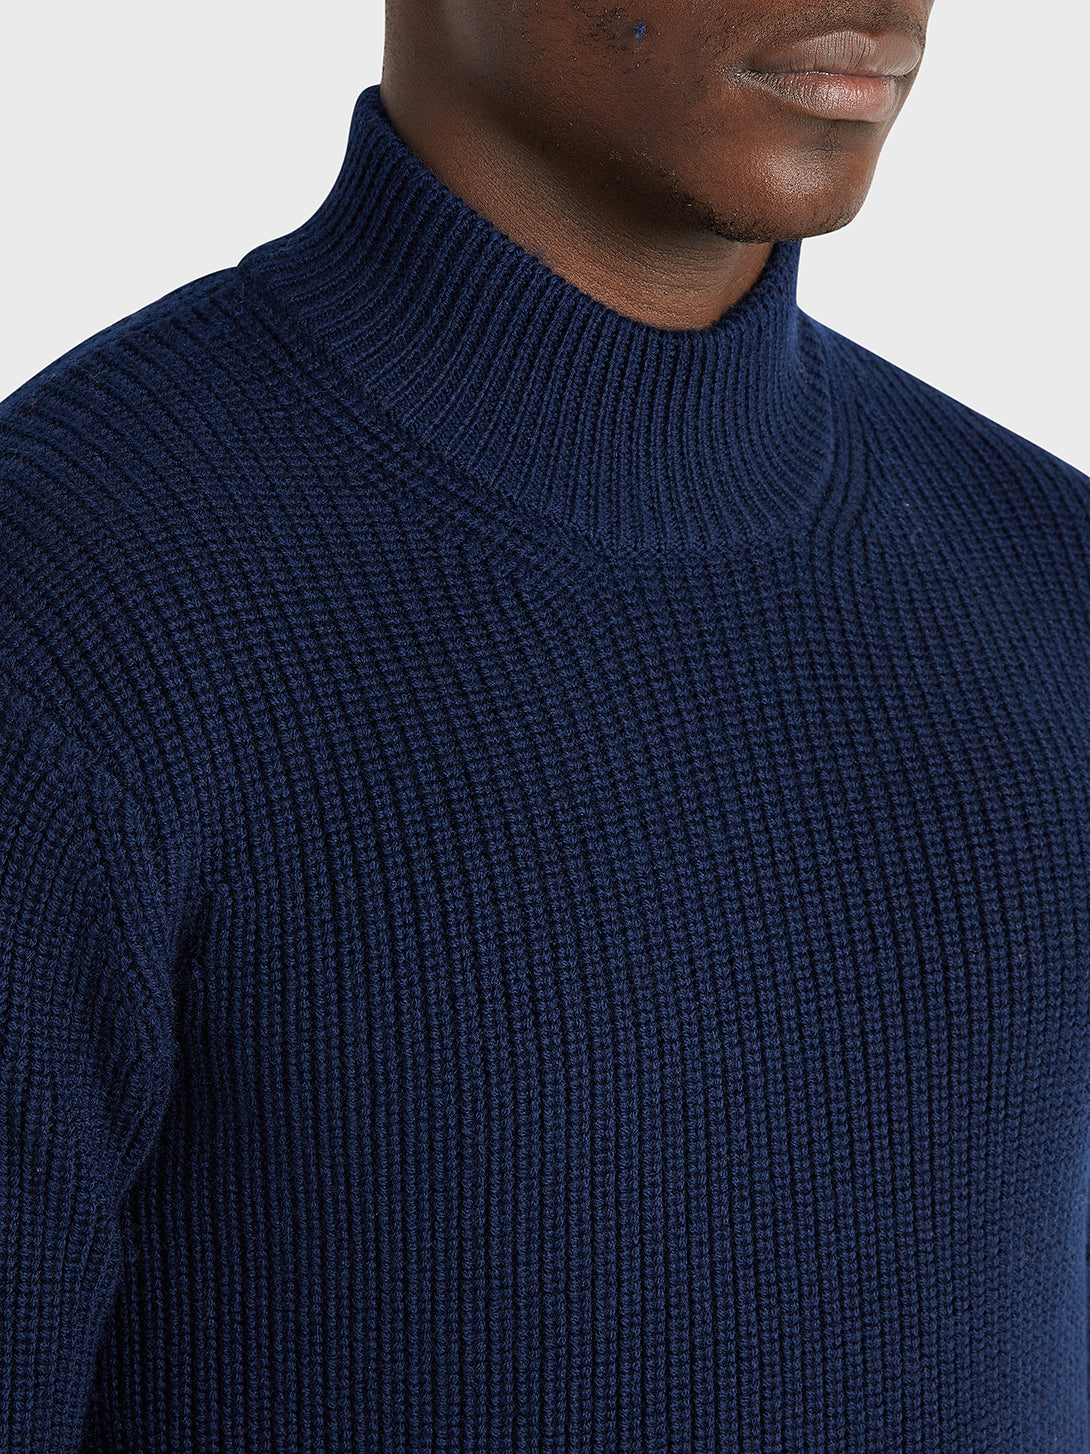 black friday deals ONS Clothing Men's Acton Mock Neck Sweater in NAVY H